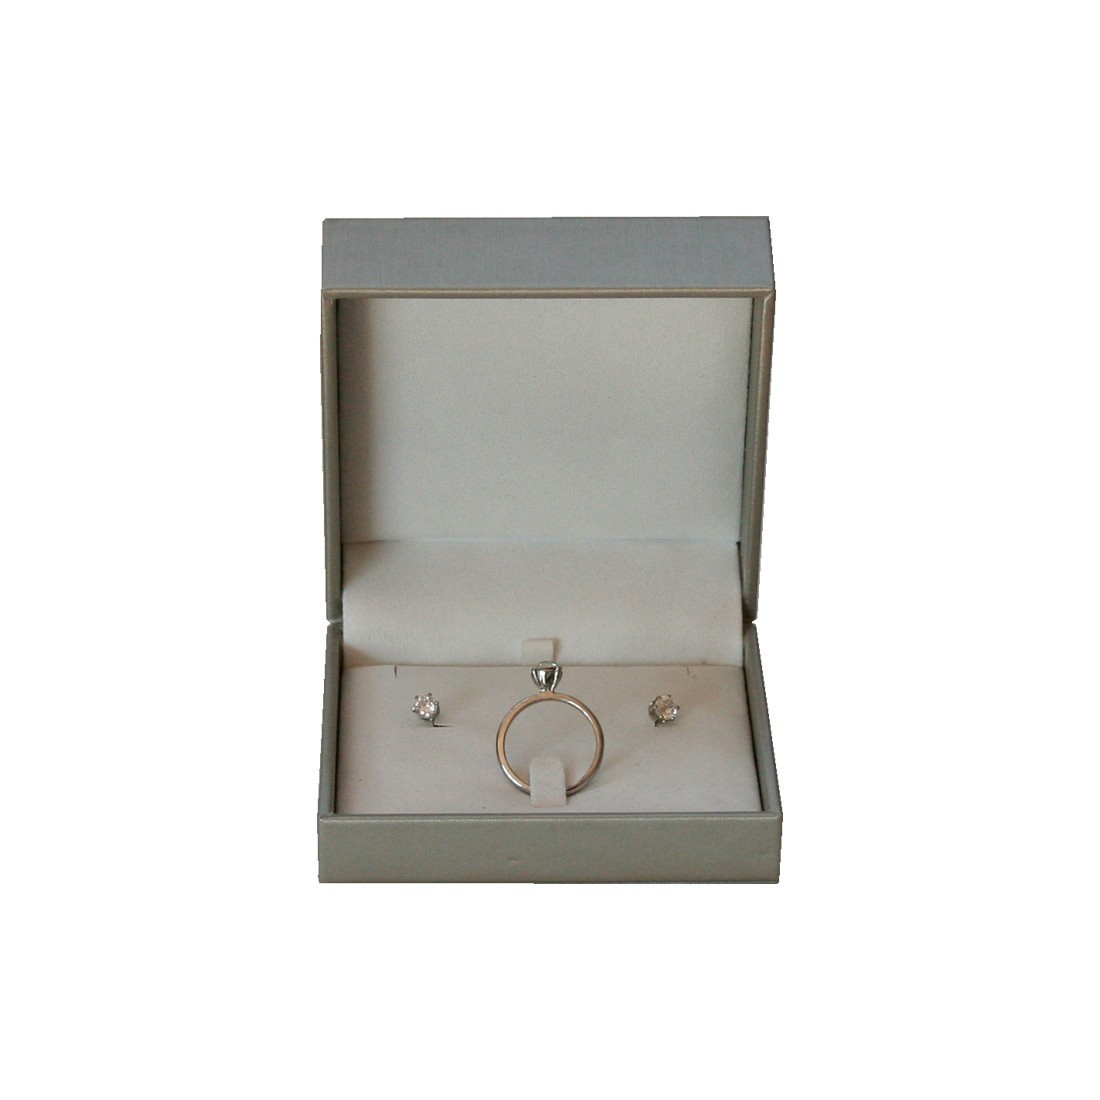 Earrings and Ring Box - Glamm